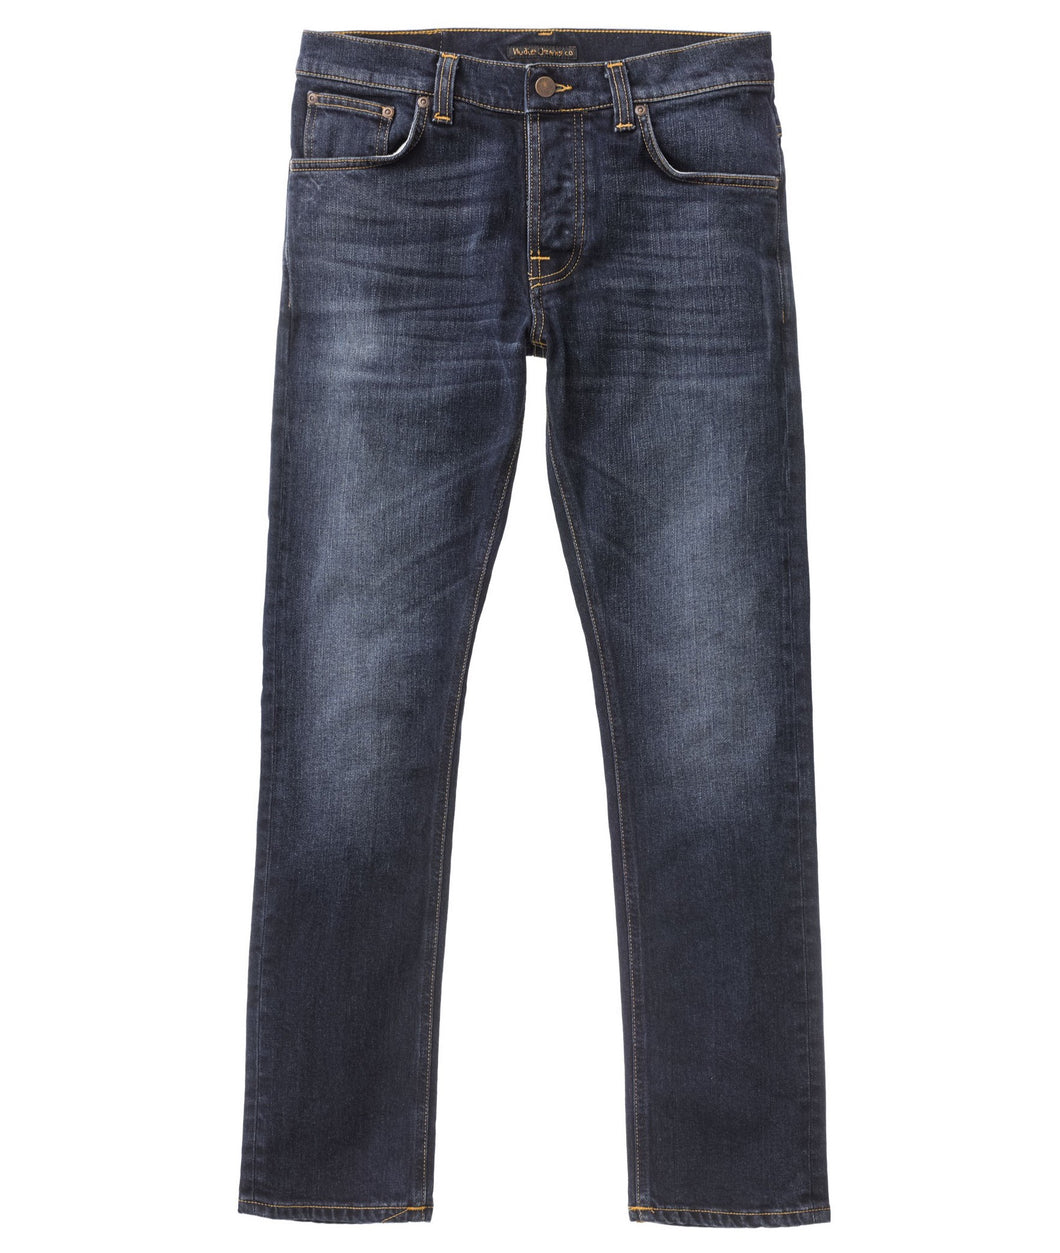 Nudie Jeans Co. Grim Tim